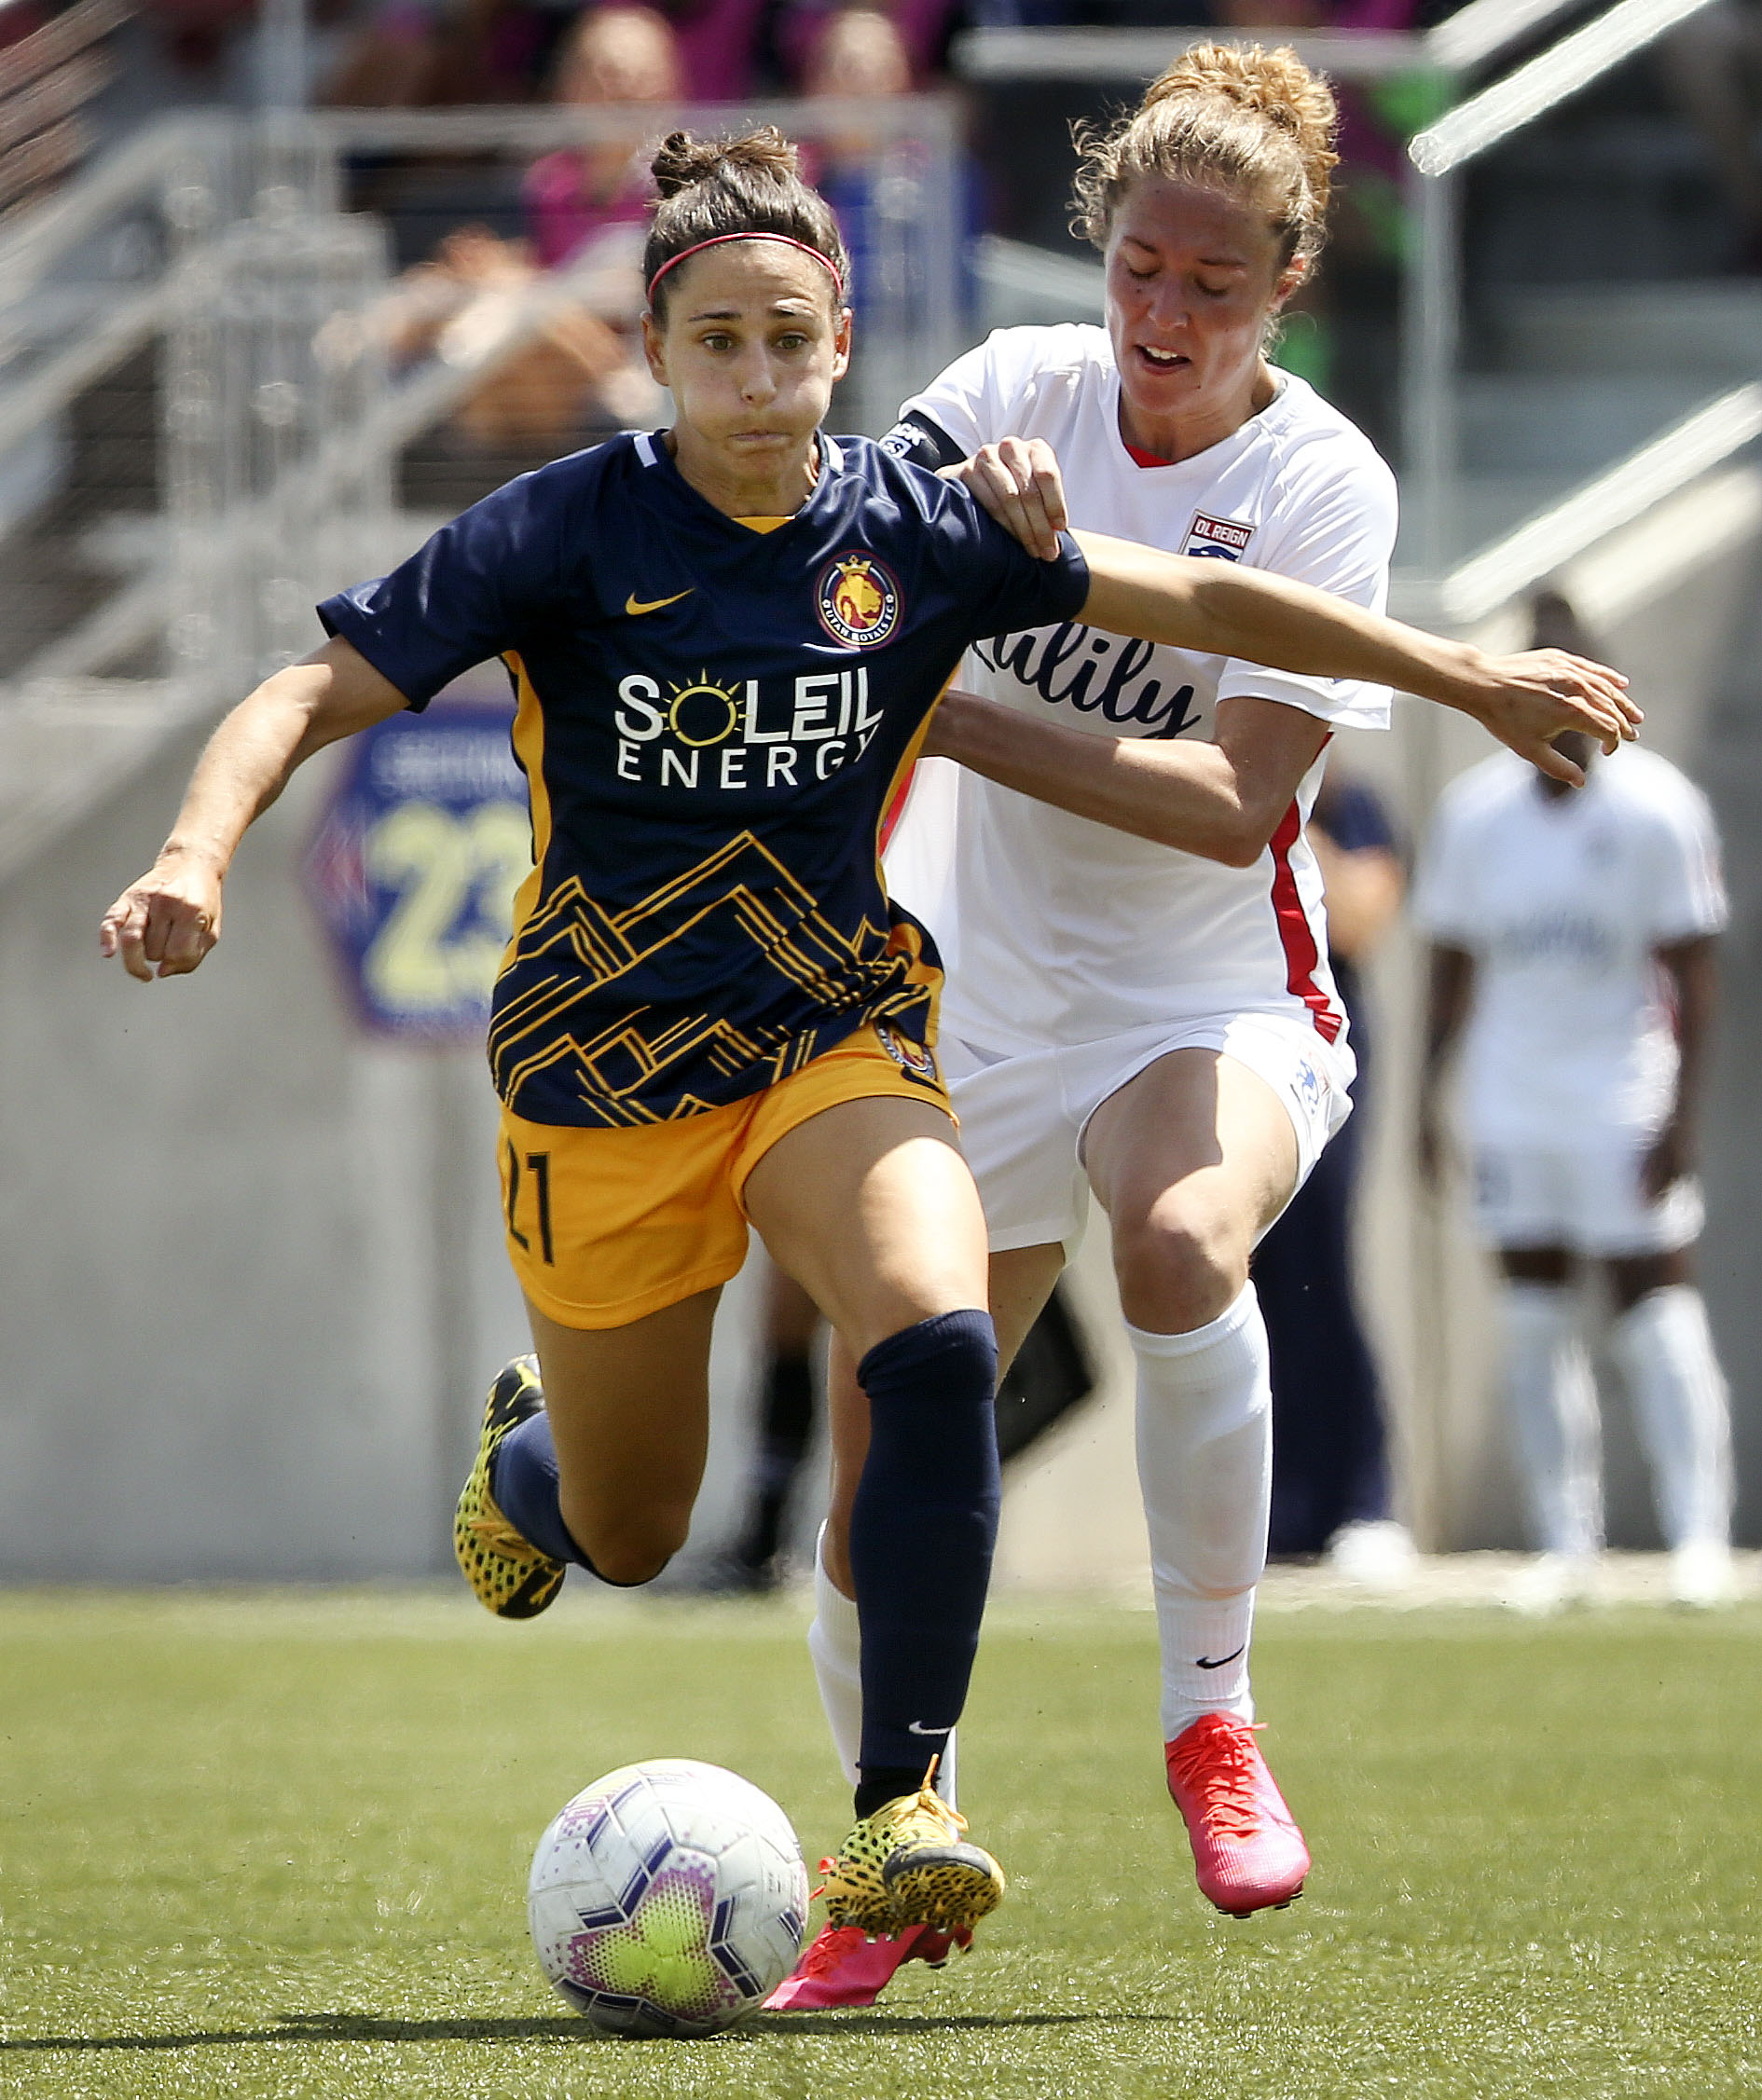 Utah Royals player Veronica Boquete (21) drives to the goal against OL Reign Celia defender Jimenez Delgado in a 2020 NWSL Challenge Cup game at Zions Bank Stadium in Herriman on Wednesday, July 8, 2020.